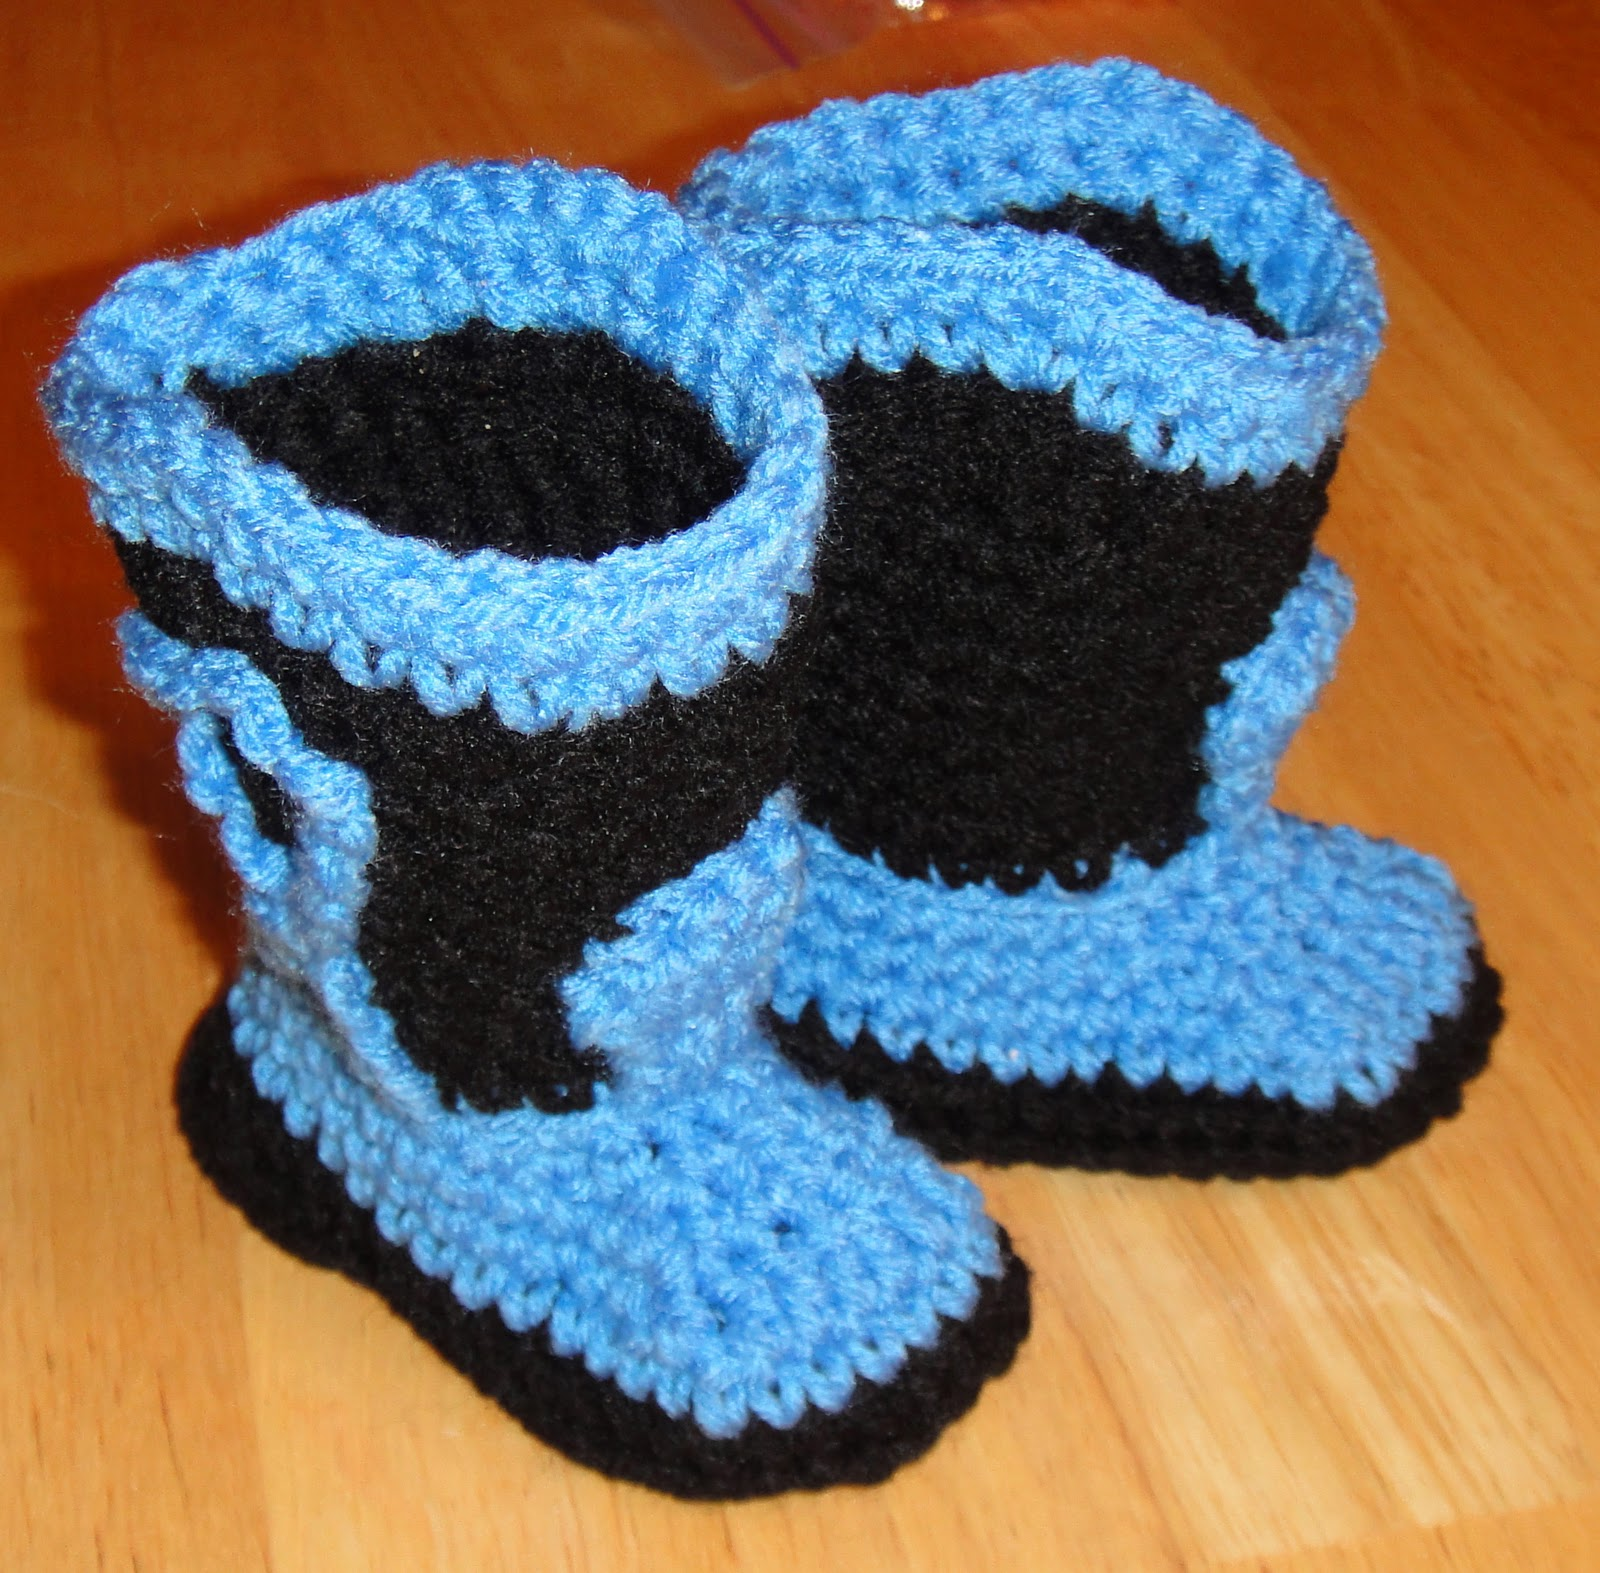 Free Crochet Patterns For Baby Girl Bonnets : Heathers Craft Corner: Crochet Baby Cowboy Boots